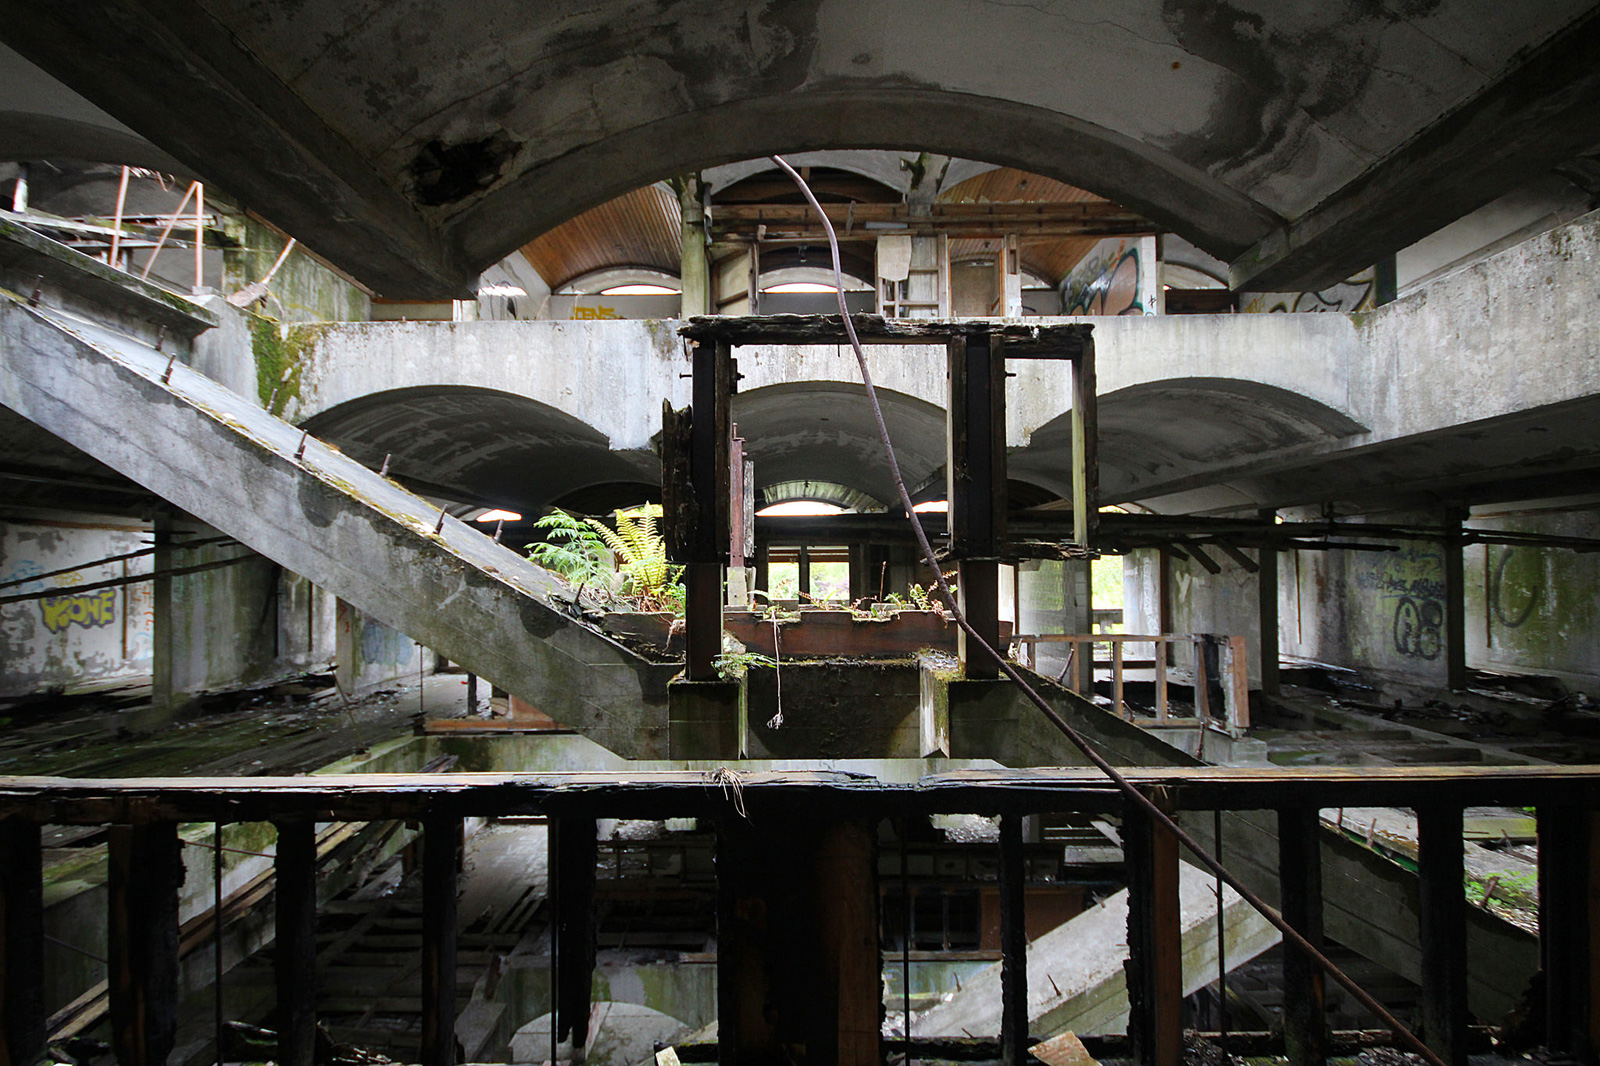 St. Peter's Seminary, Cardross. Architects Gillespie, Kidd & Coia, 1966. Photography: Trevor Patt